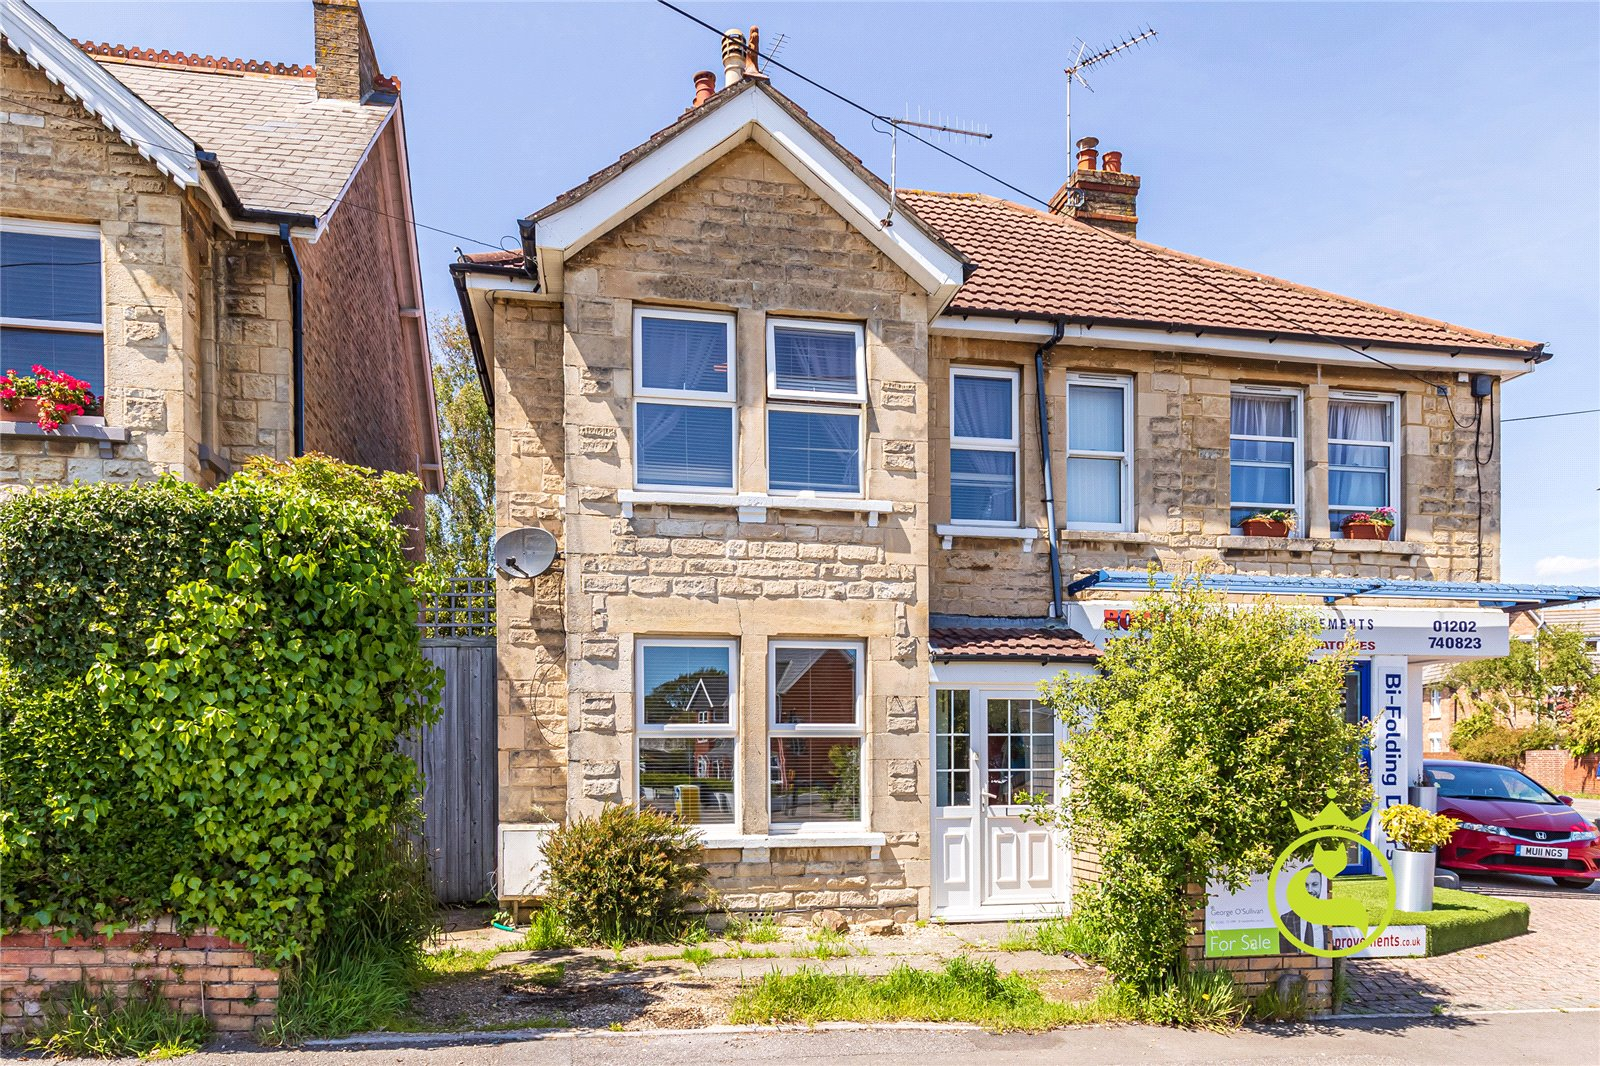 3 bed house for sale in Whitefield Road, Whitecliff, BH14